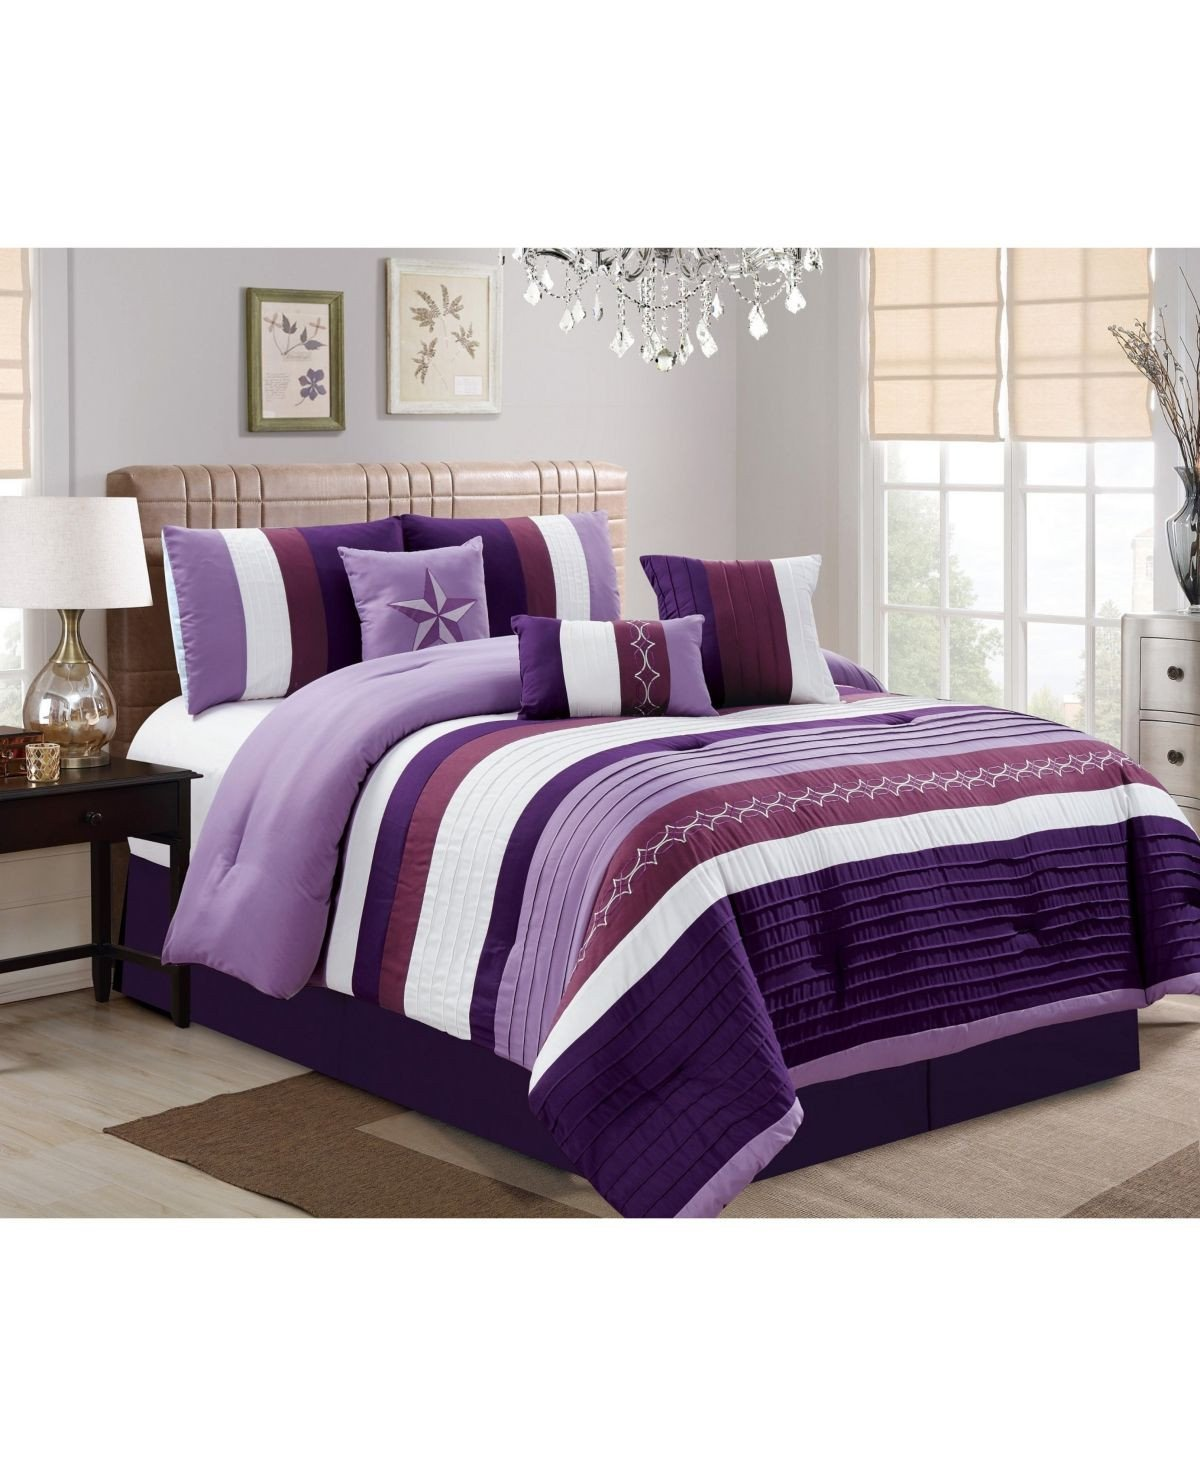 7 Piece Bedroom Set Fresh Luxlen Fulgham 7 Piece forter Set Cal King Purple